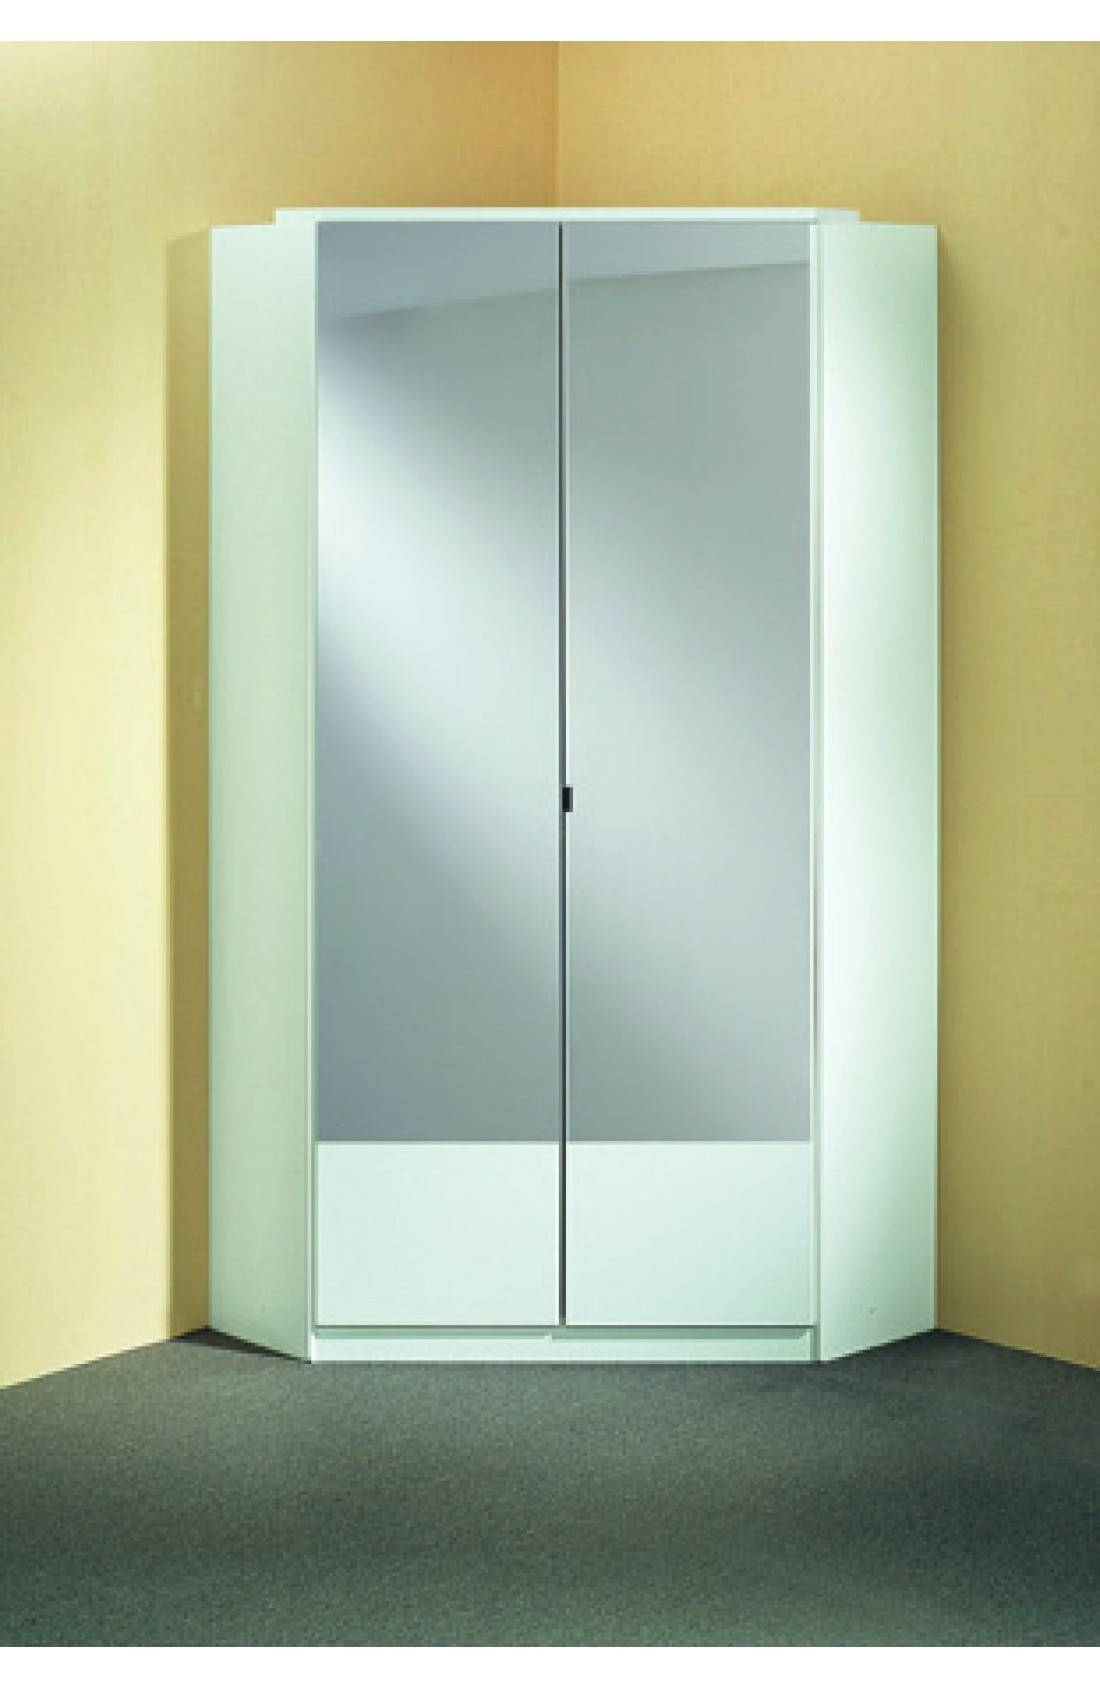 Slumberhaus 'imago' German Made Modern Alpine White & Mirror 2 with regard to White Corner Wardrobes (Image 14 of 15)